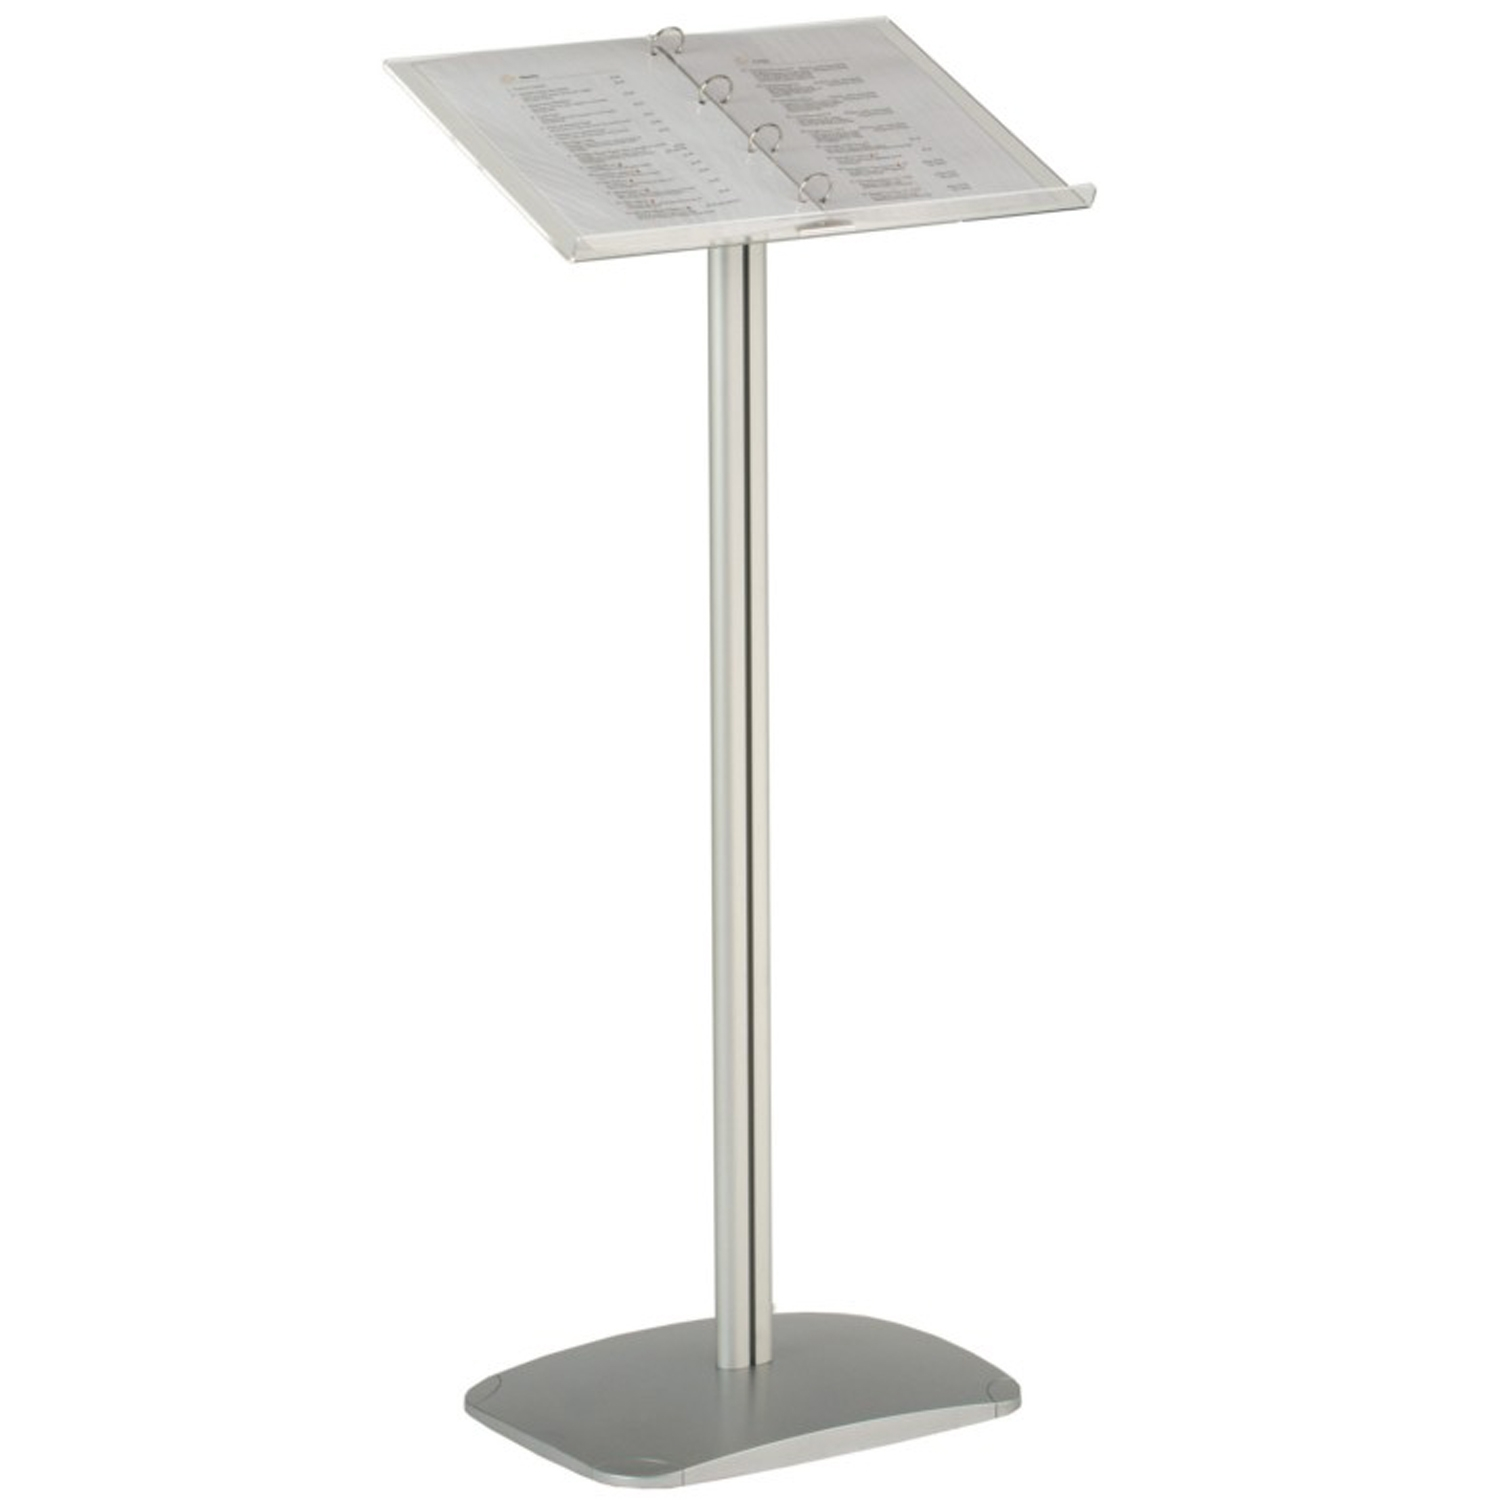 Acrylic Top Information Stand